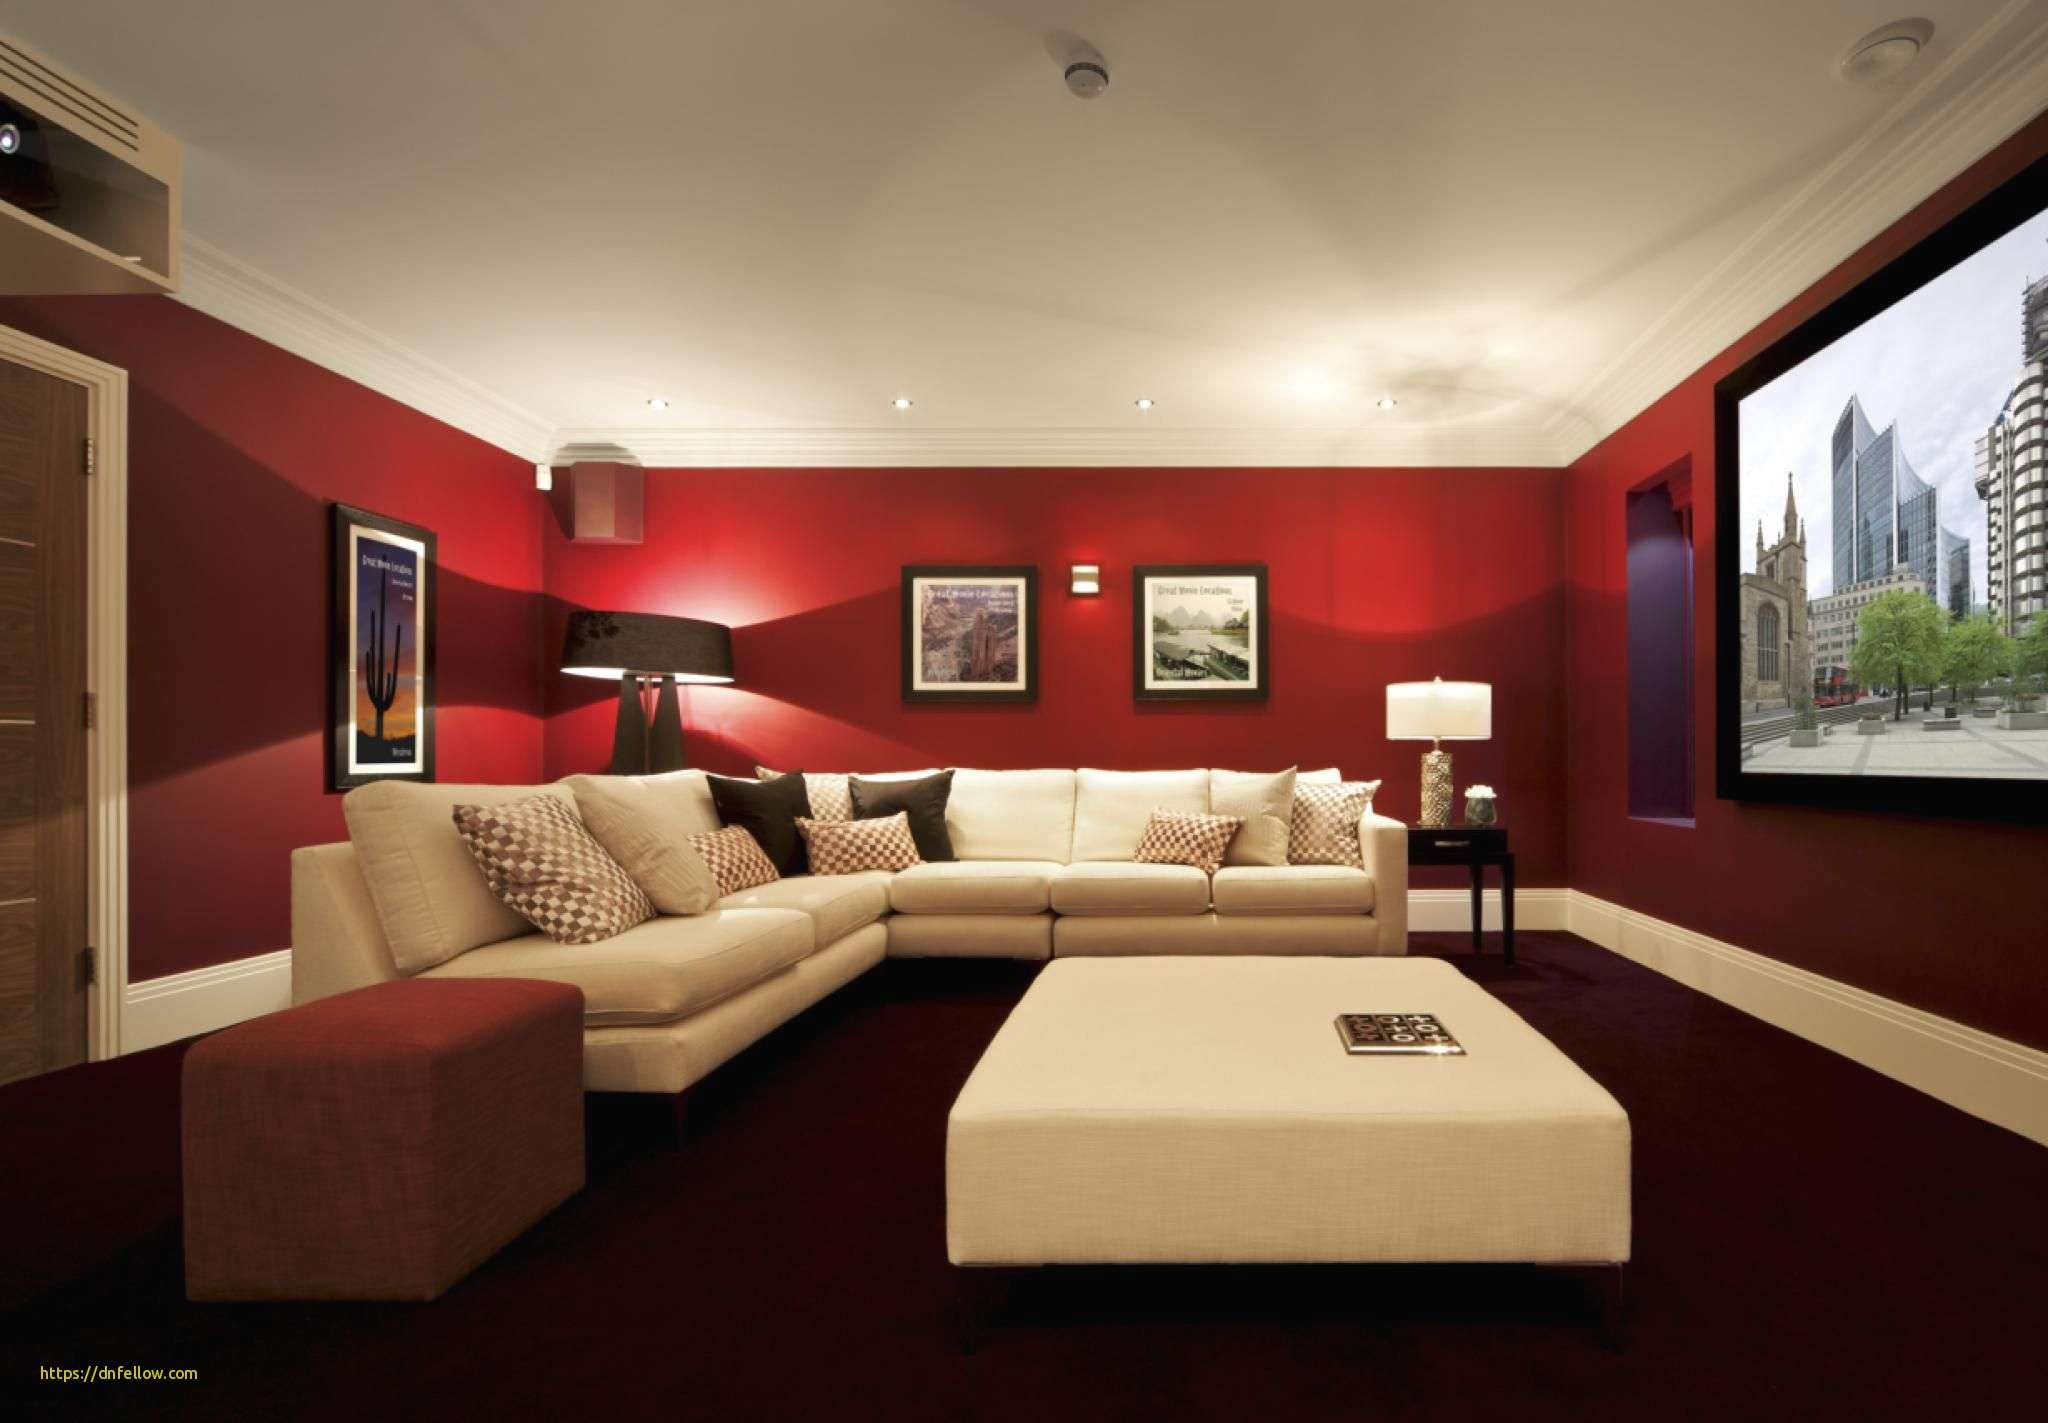 Inspirational Red Wall Paint Combinations Httpsdnfellowcom